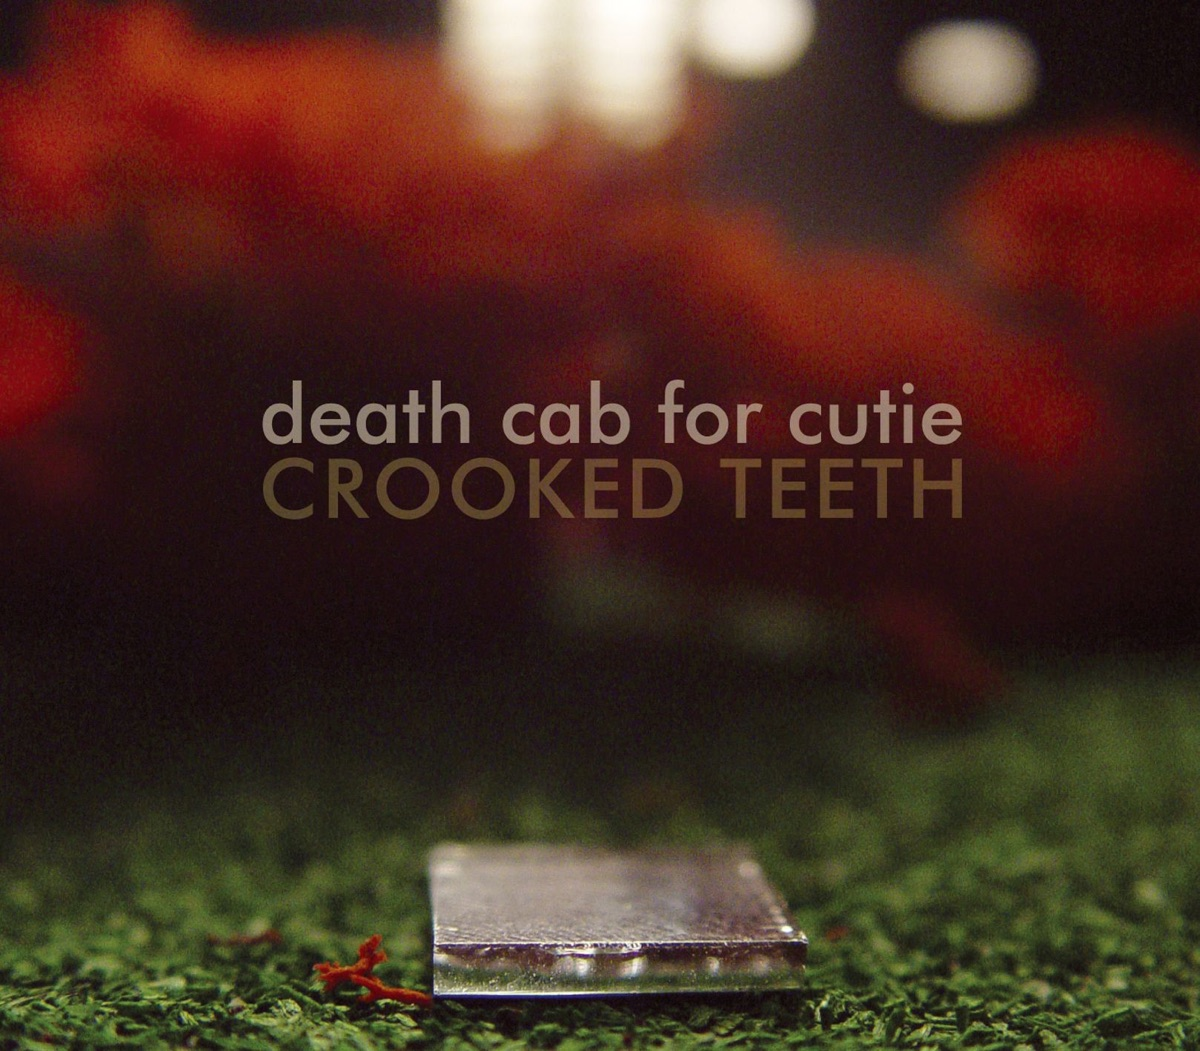 Crooked Teeth - EP Death Cab for Cutie CD cover